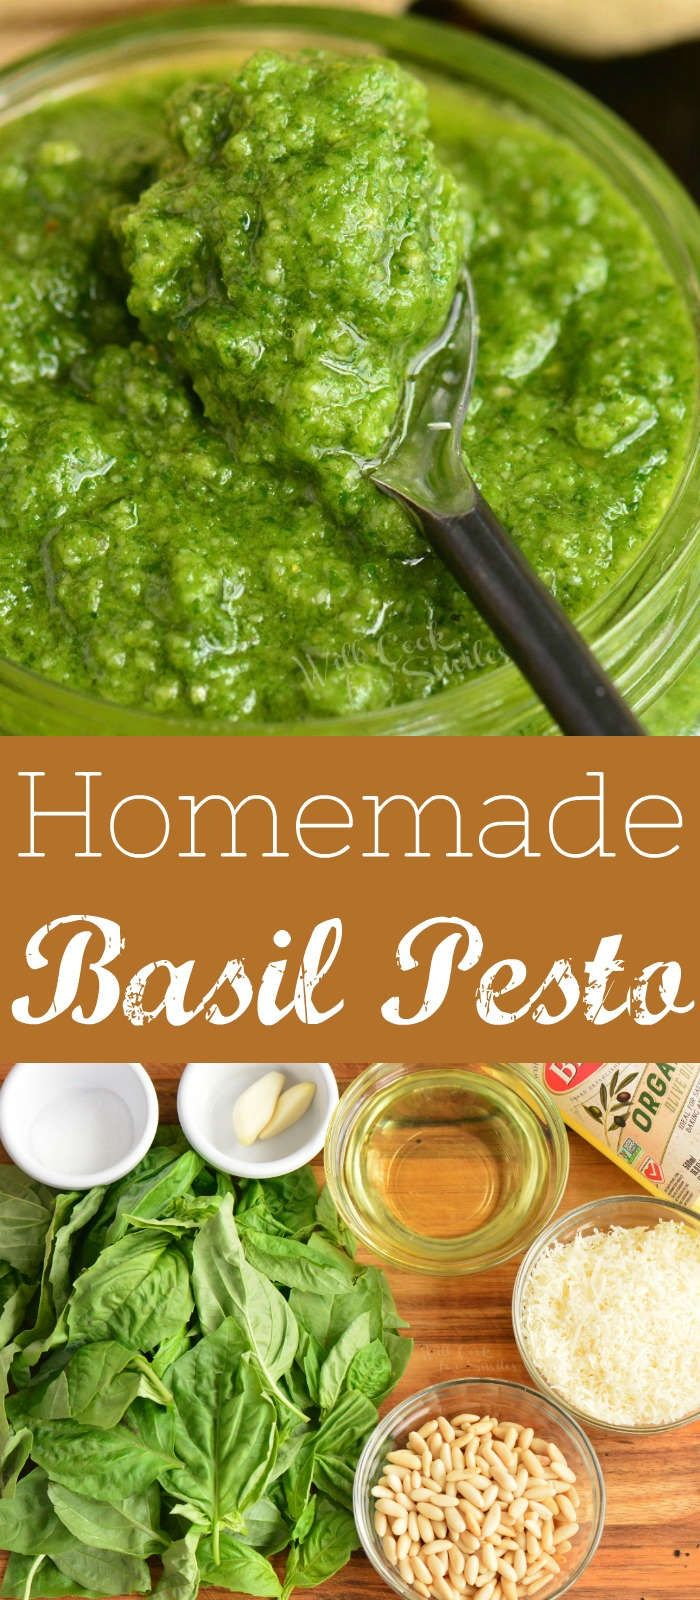 Pesto is so easy and packed with simple but beautiful flavors of fresh basil, pine nuts, garlic, olive oil, and dry aged cheese like Parmigiano-Reggiano. It's easy to make in 5 minutes and freeze extra for later. #pesto #sauce #nocook #italian #basil #pasta #easydinner